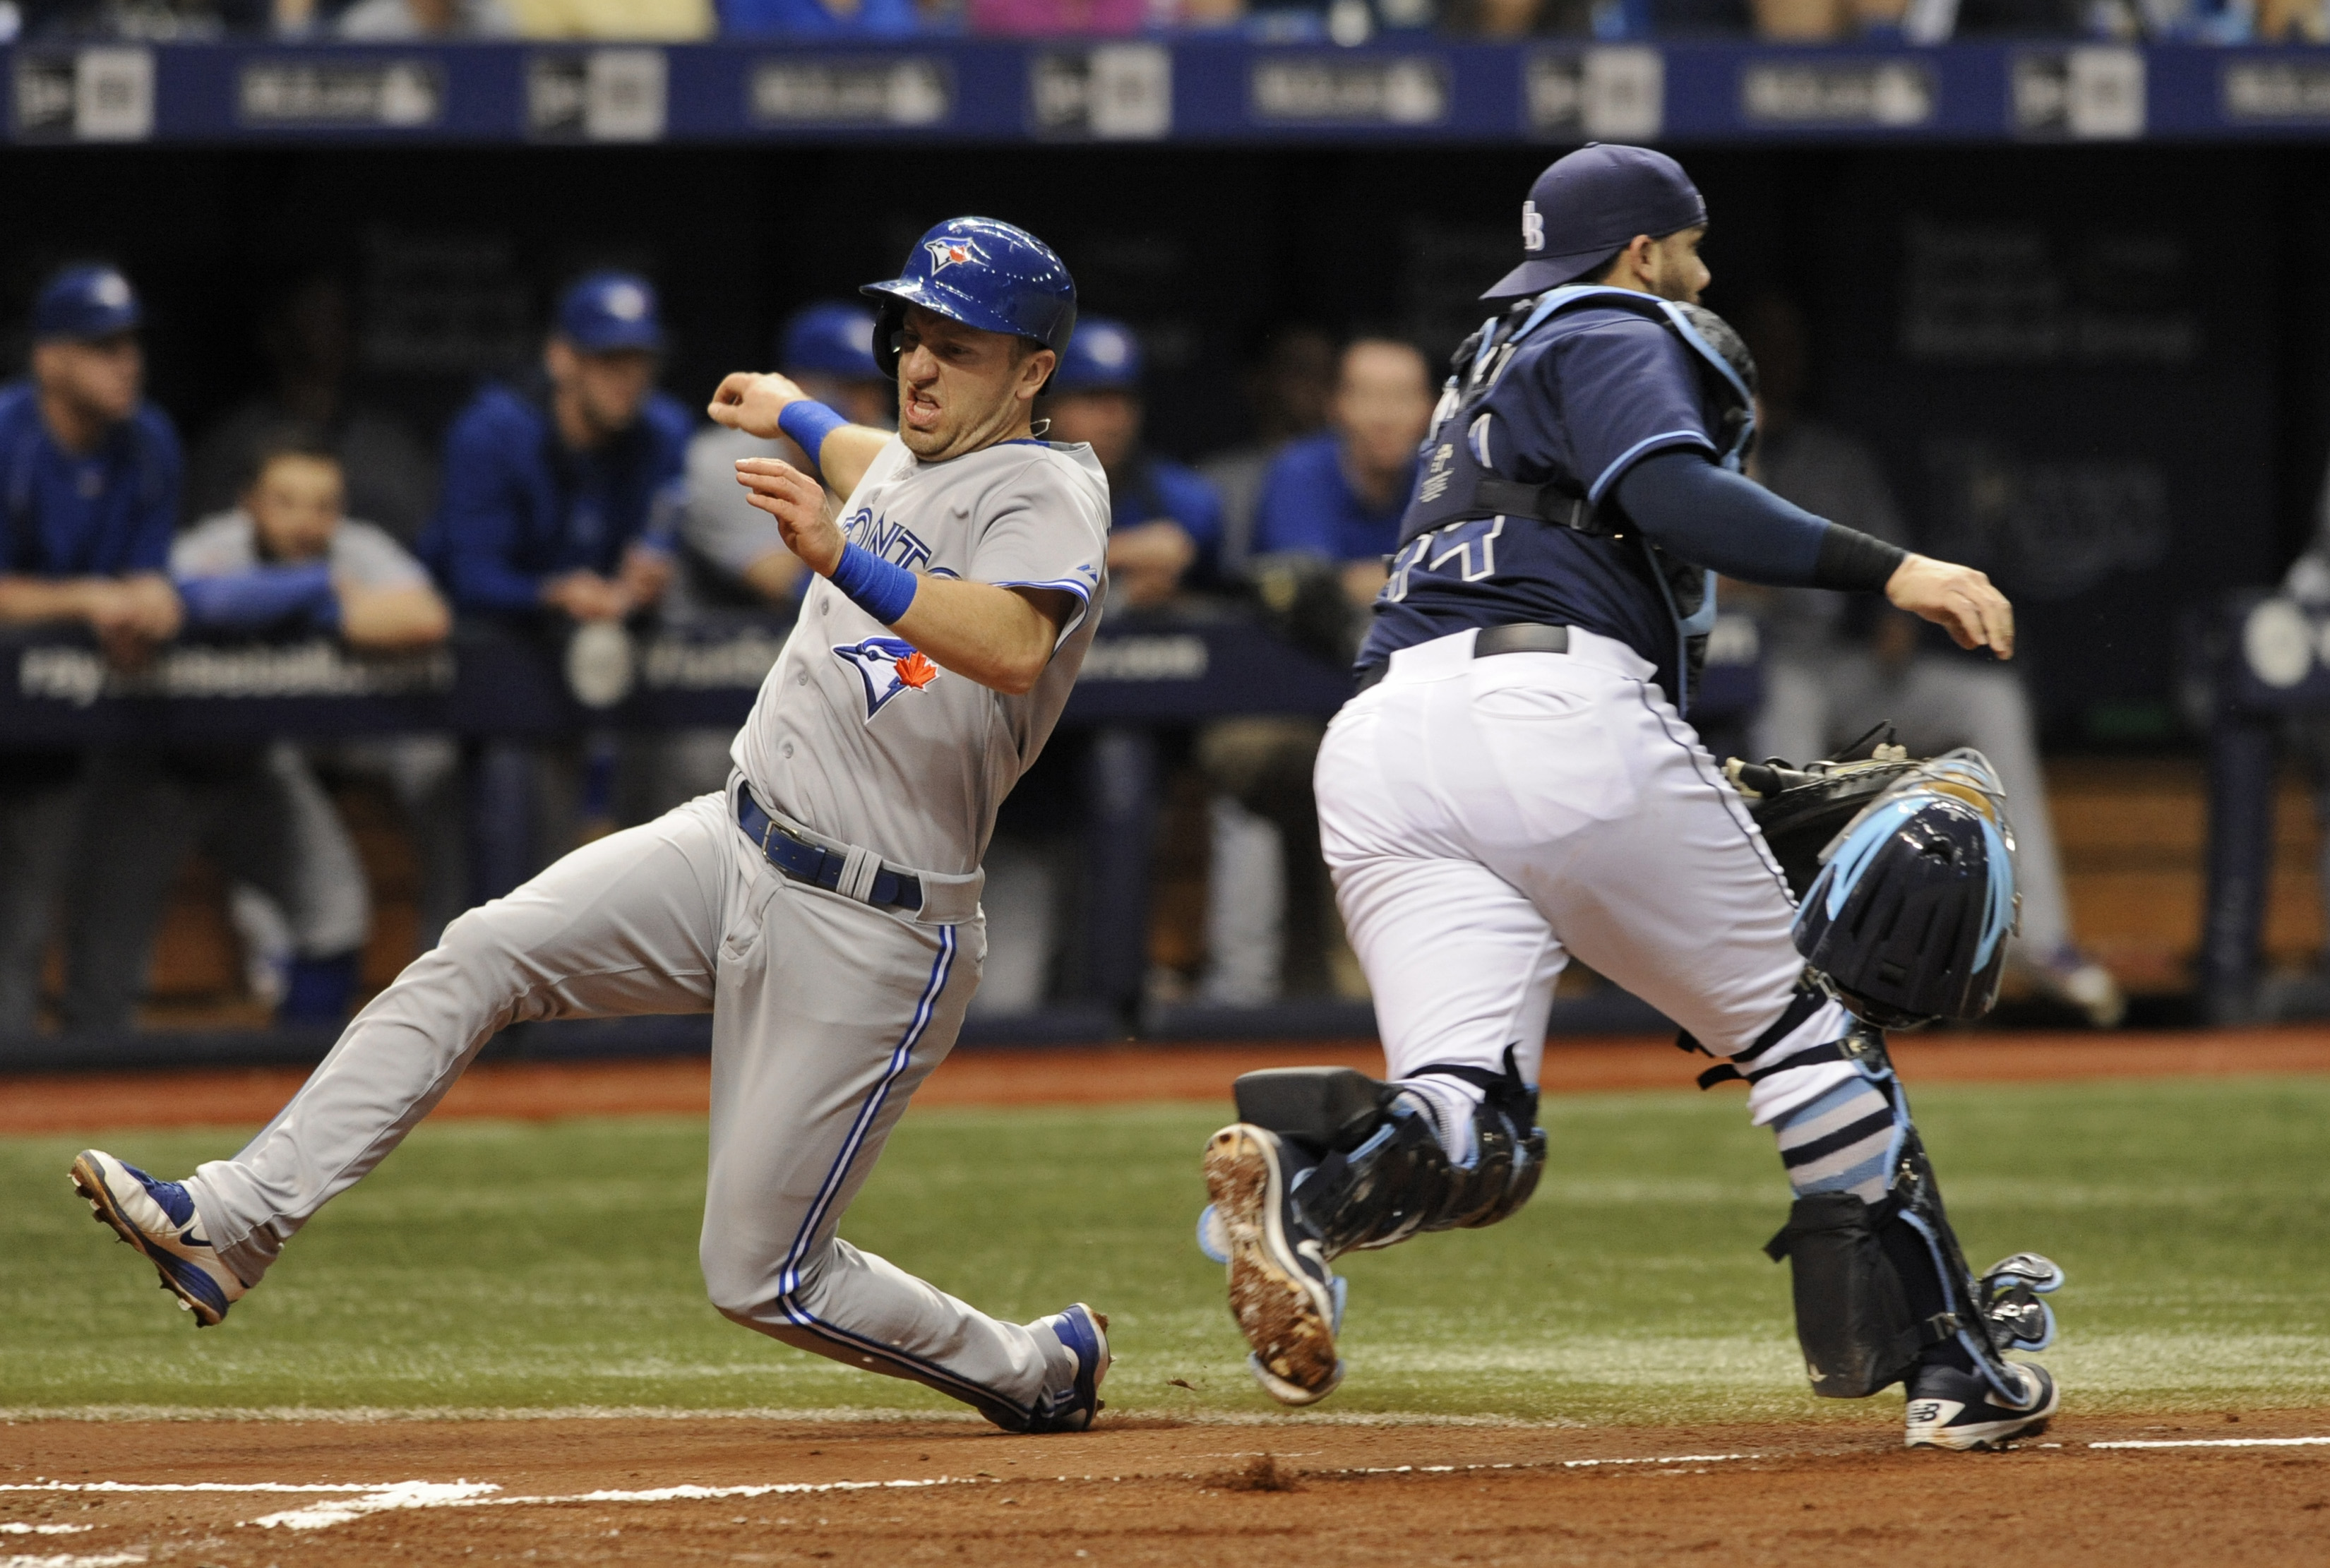 Toronto Blue Jays' Cliff Pennington, left, beats the throw to Tampa Bay Rays catcher Rene Rivera, right, to score on Toronto's Jose Bautista RBI-single during the third inning of a baseball game Saturday, Oct. 3, 2015, in St. Petersburg, Fla. (AP Photo/St